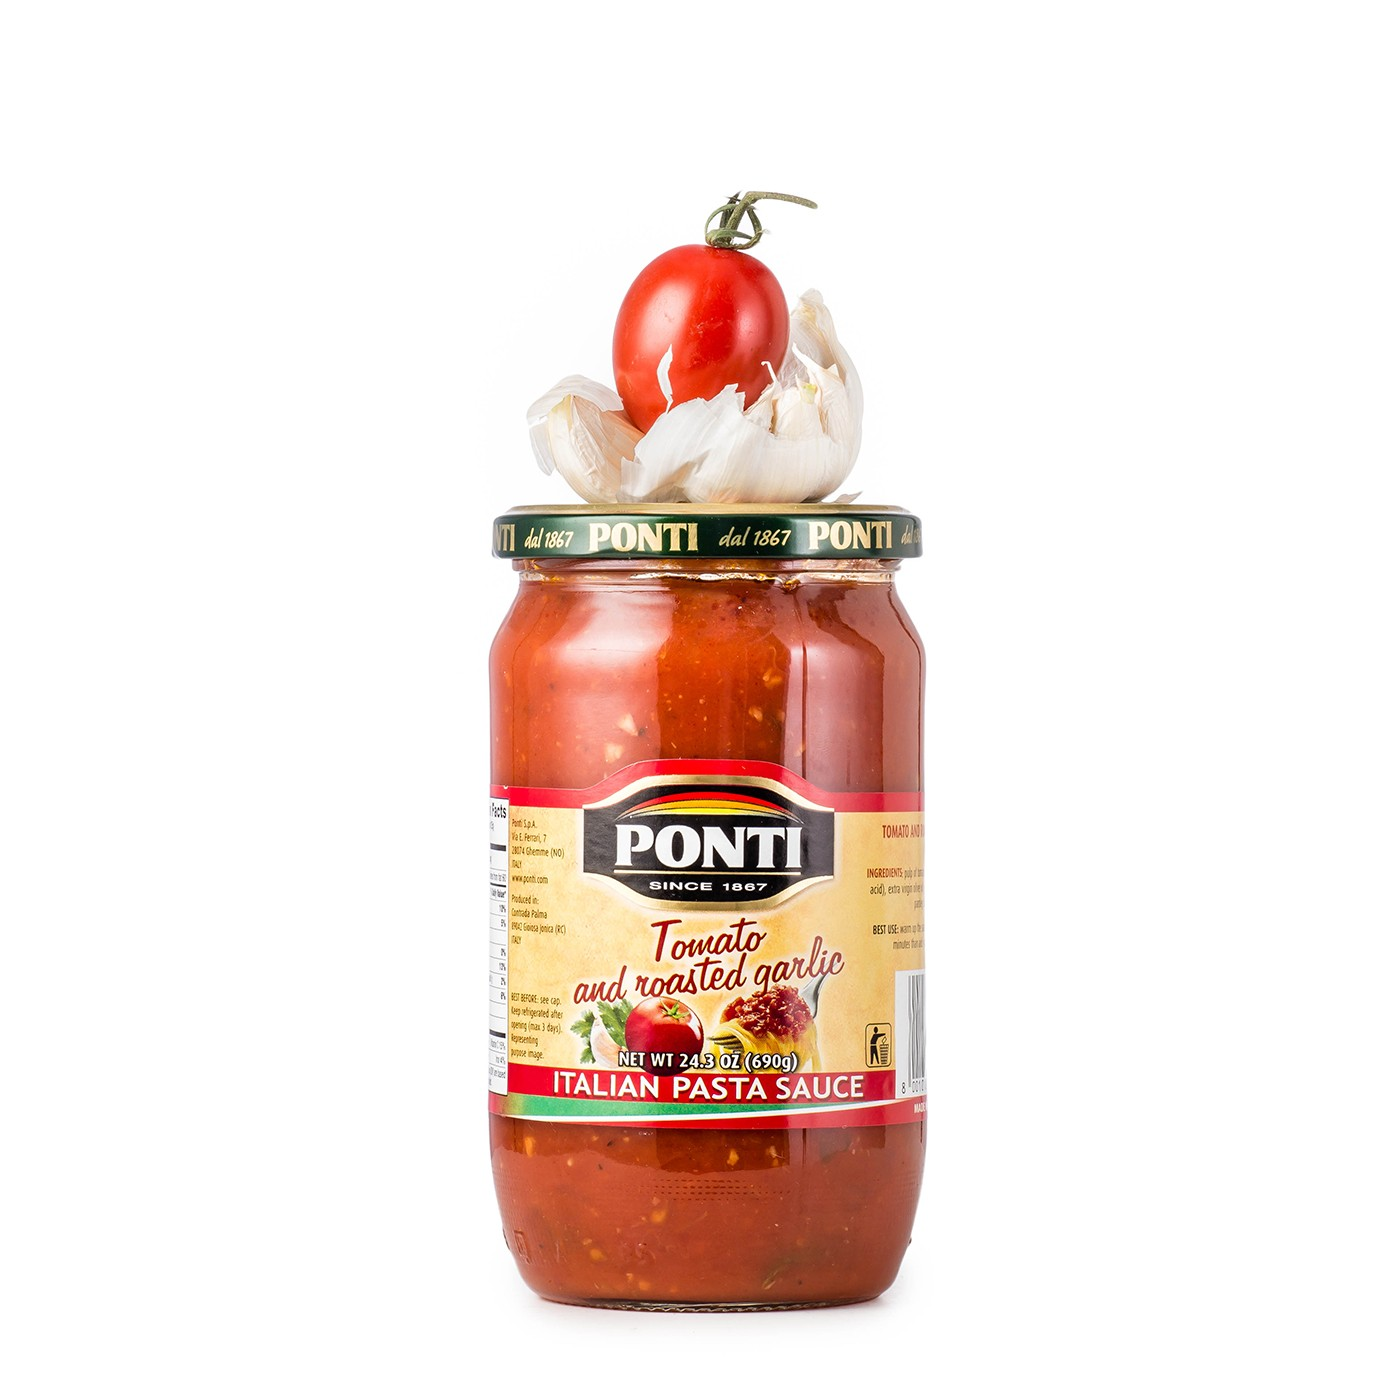 Tomato and Garlic Sauce 25.4 oz